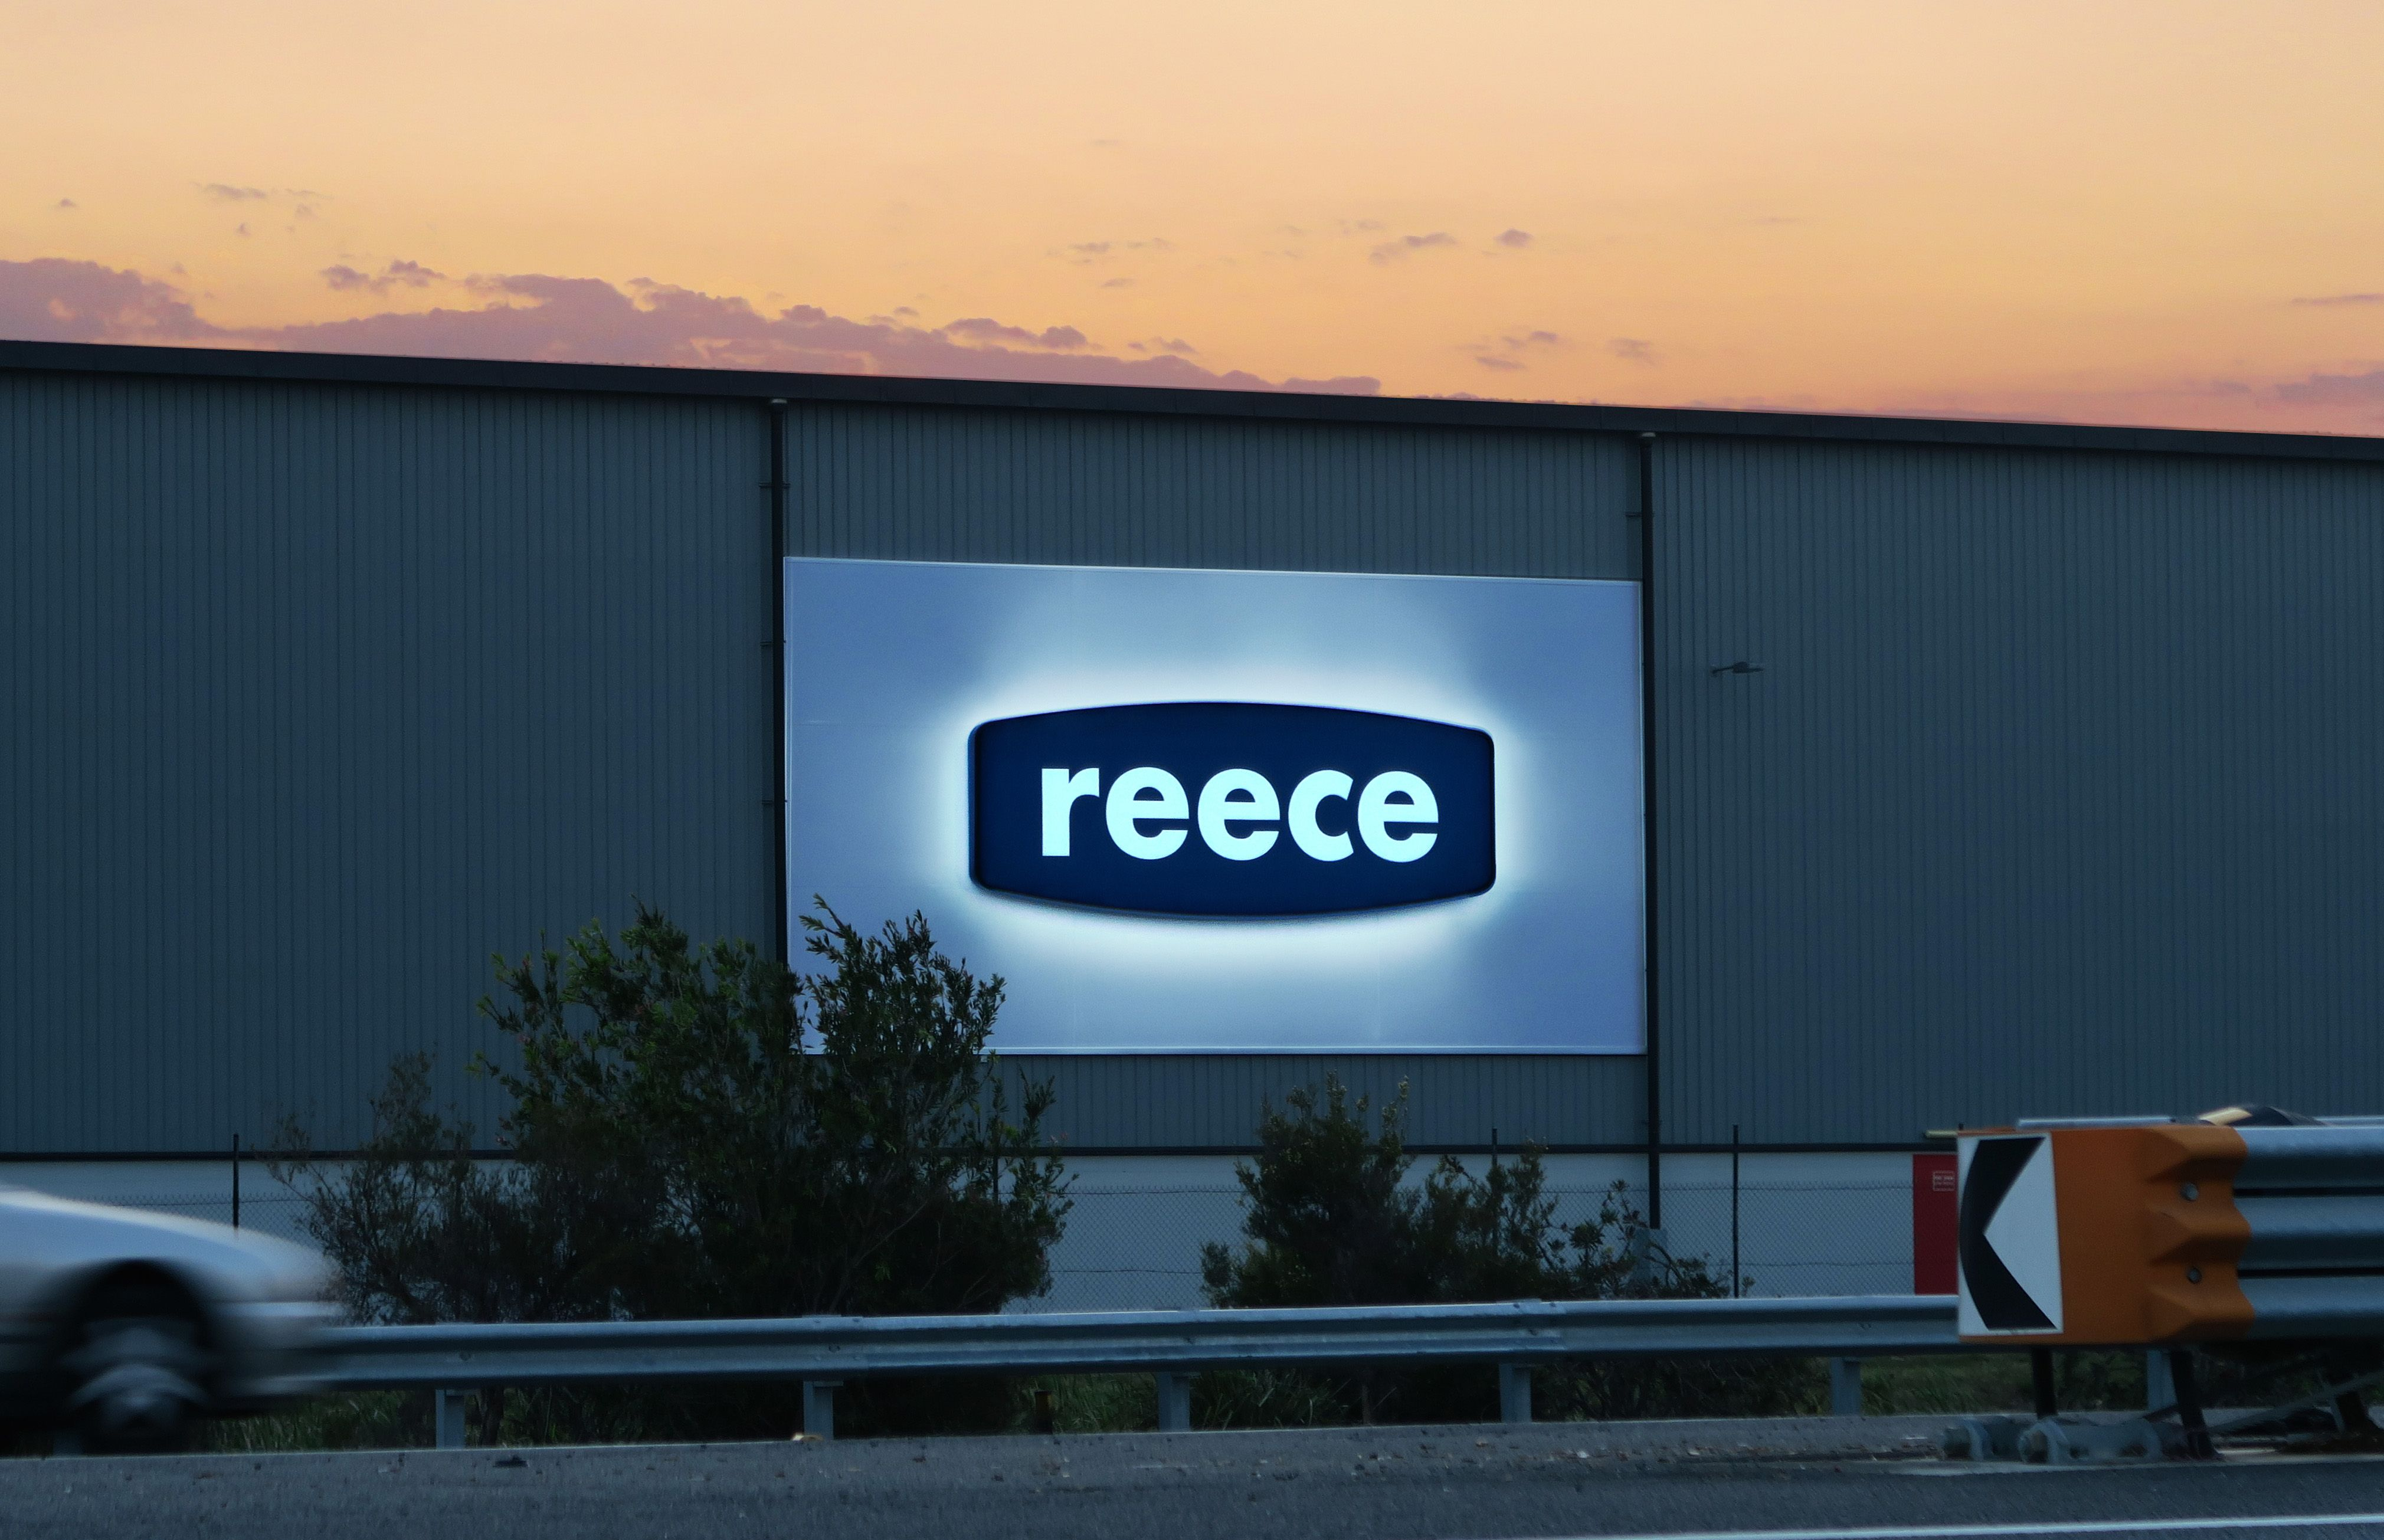 Reece Illuminated Signage